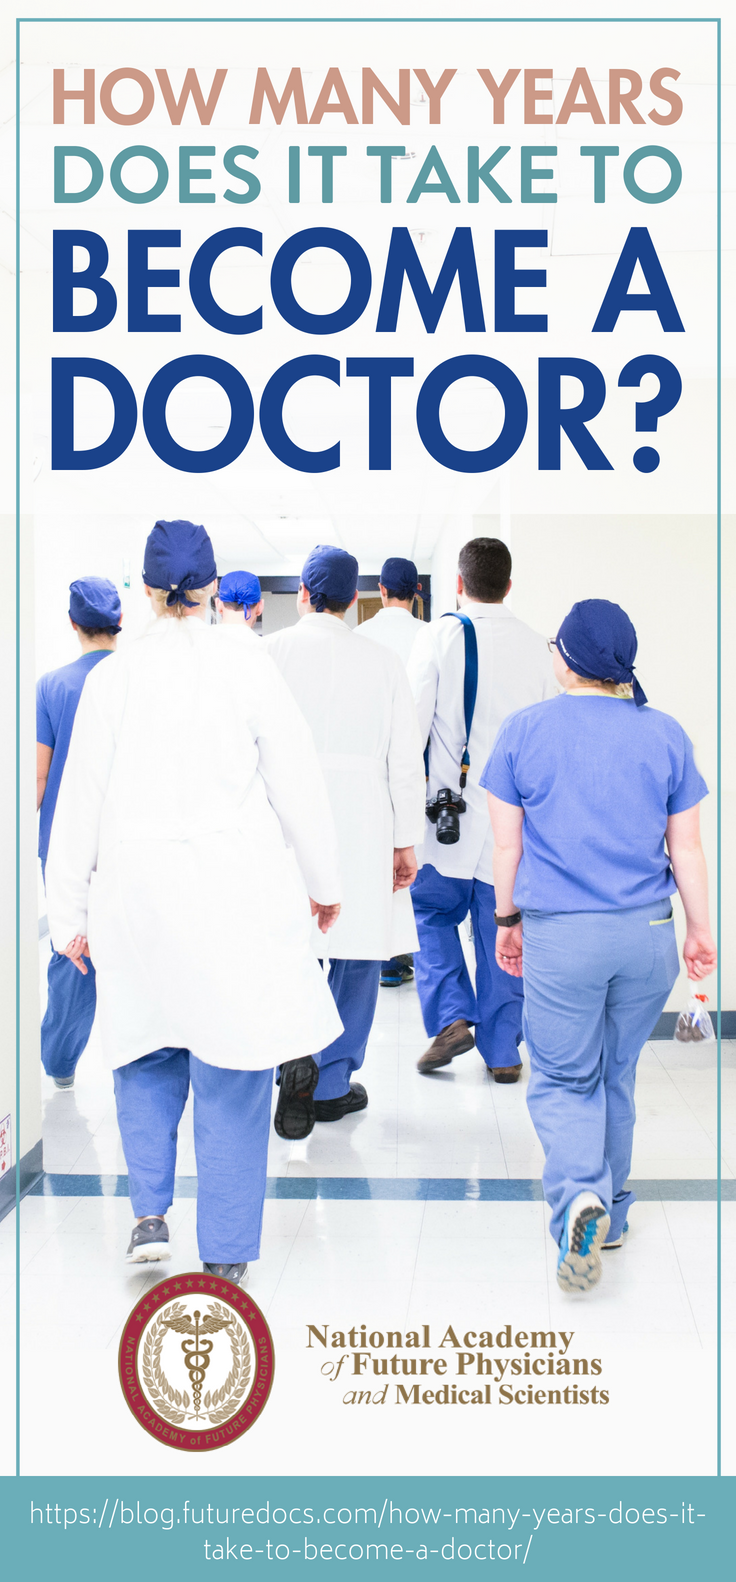 how many years does it take to become a doctor | futuredocs